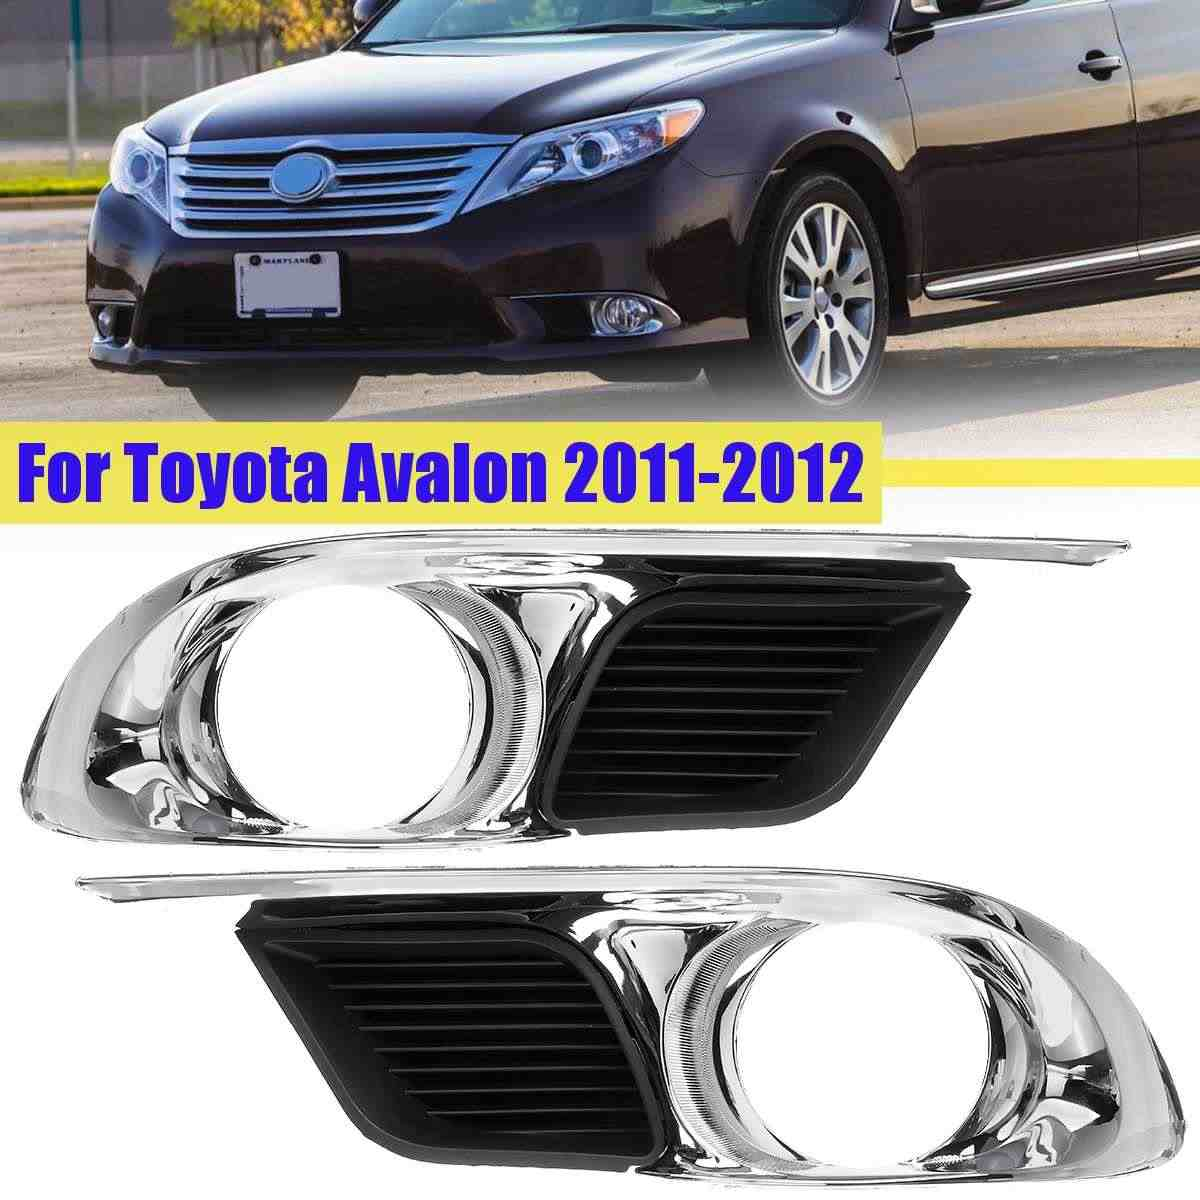 1 pcs /2pcs Front Left/Right Fog Light Lamps Frame Covers Trim For Toyota Avalon 2011-2012 5204007040 TO1038156  Car Accessories